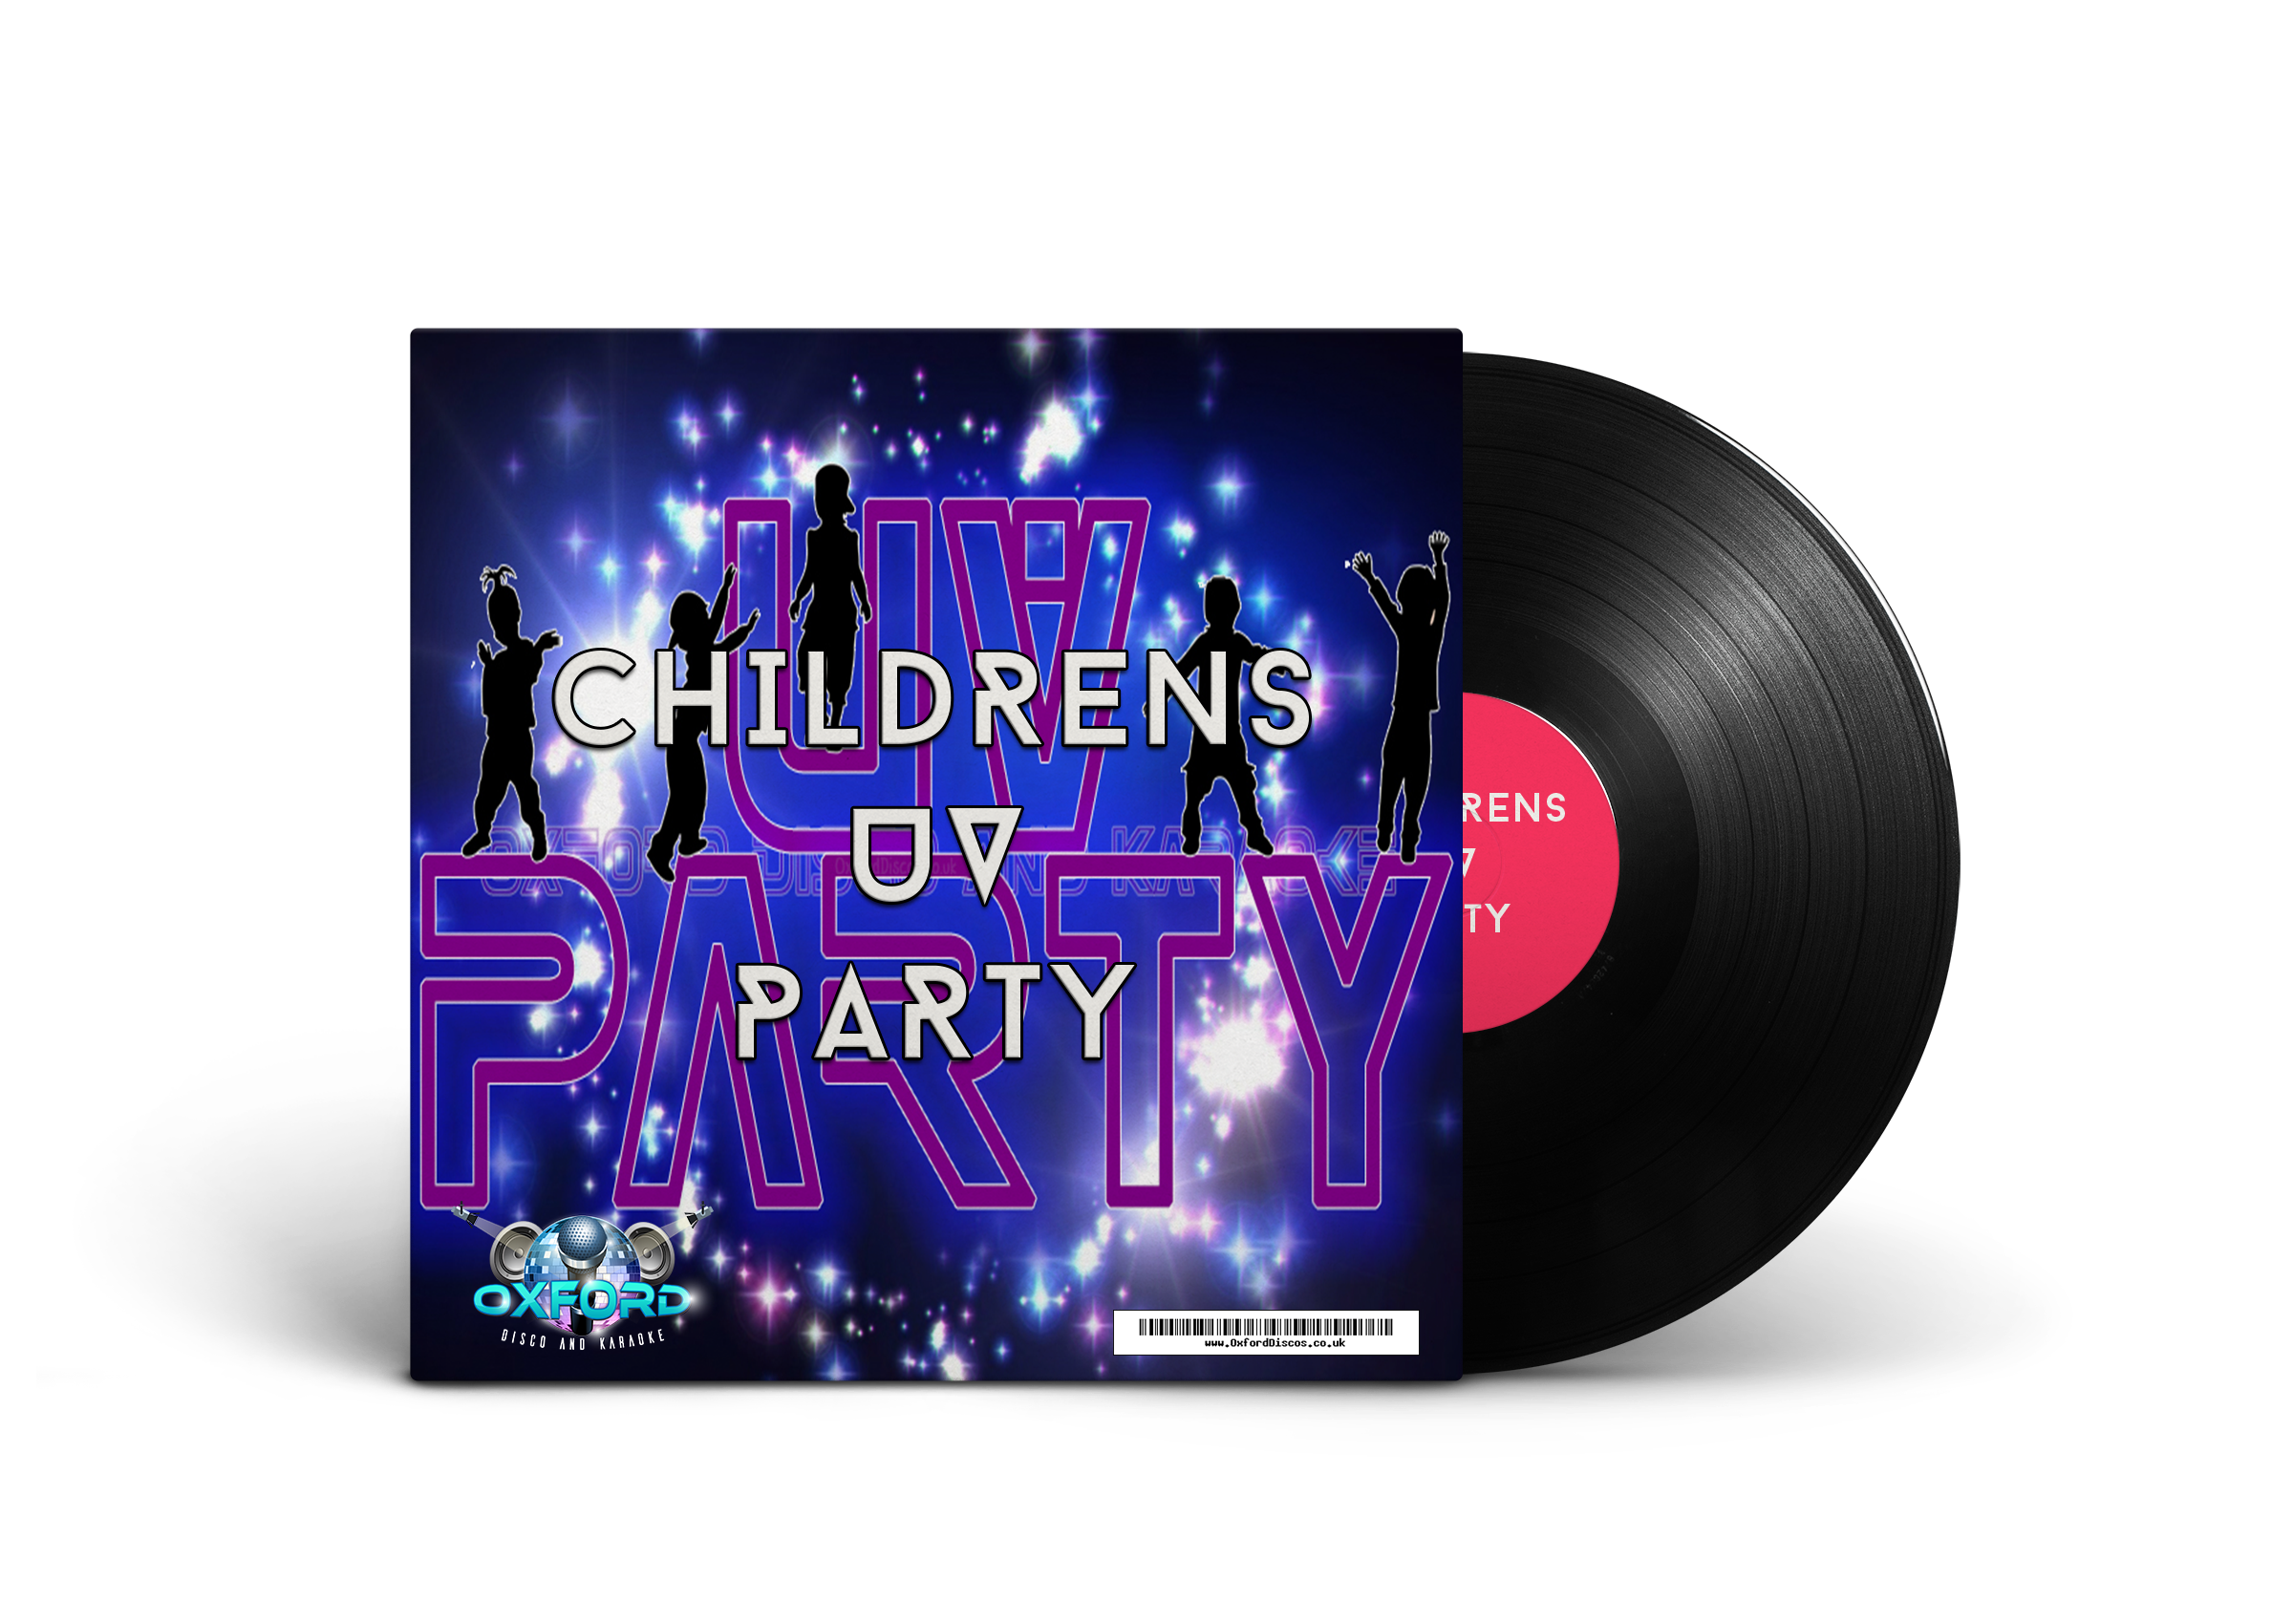 Oxford Disco and Karaoke Childrens UV Party